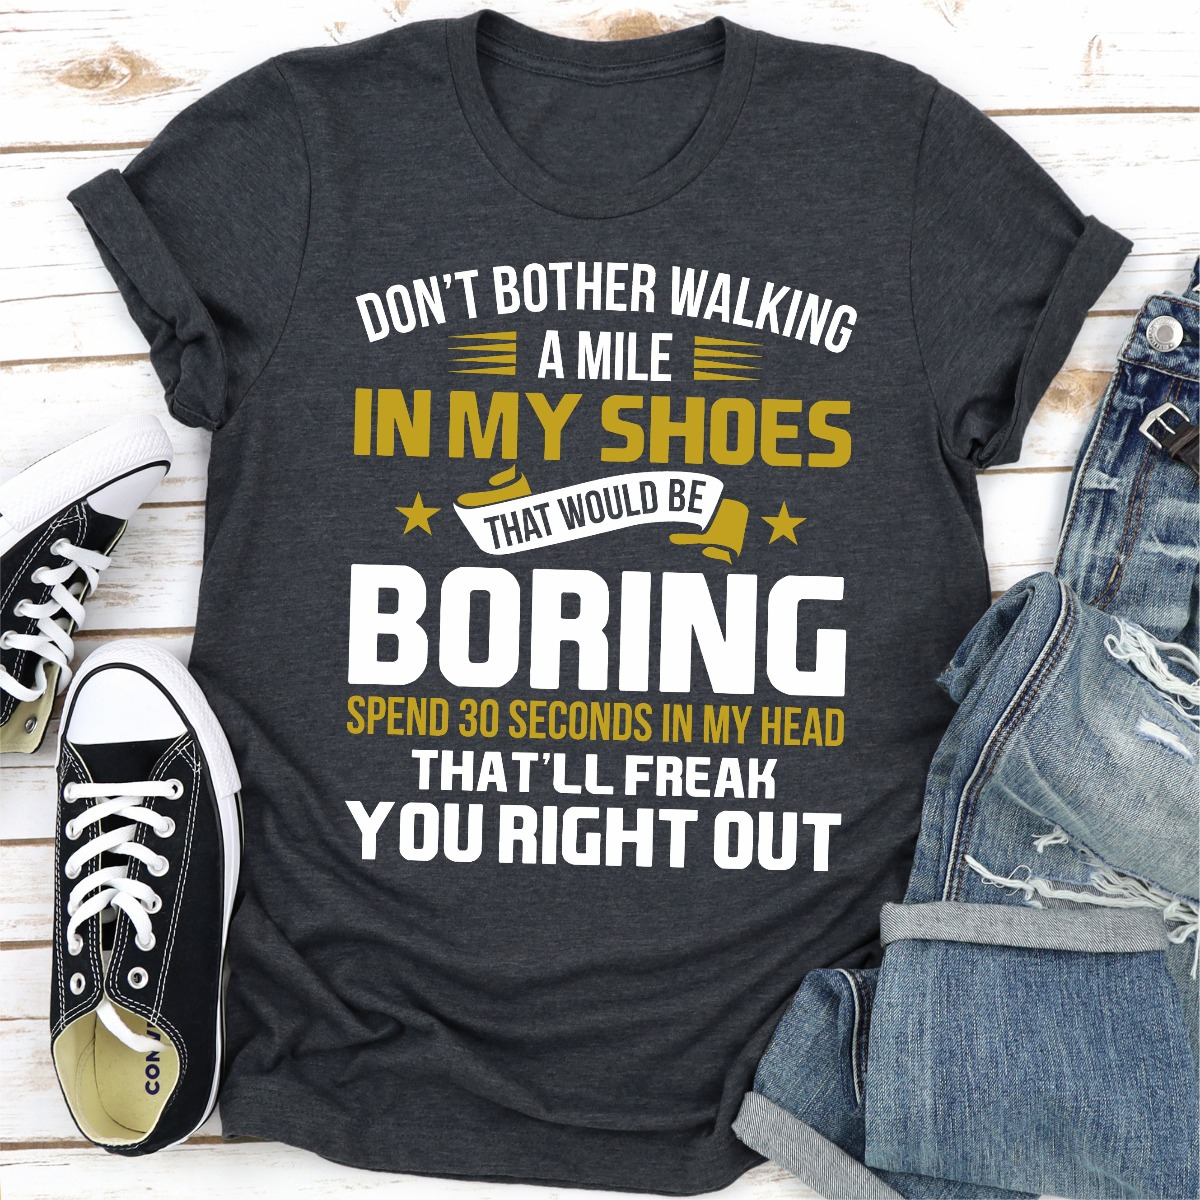 Don't Bother Walking A Mile In My Shoes (Dark Heather / Xl)